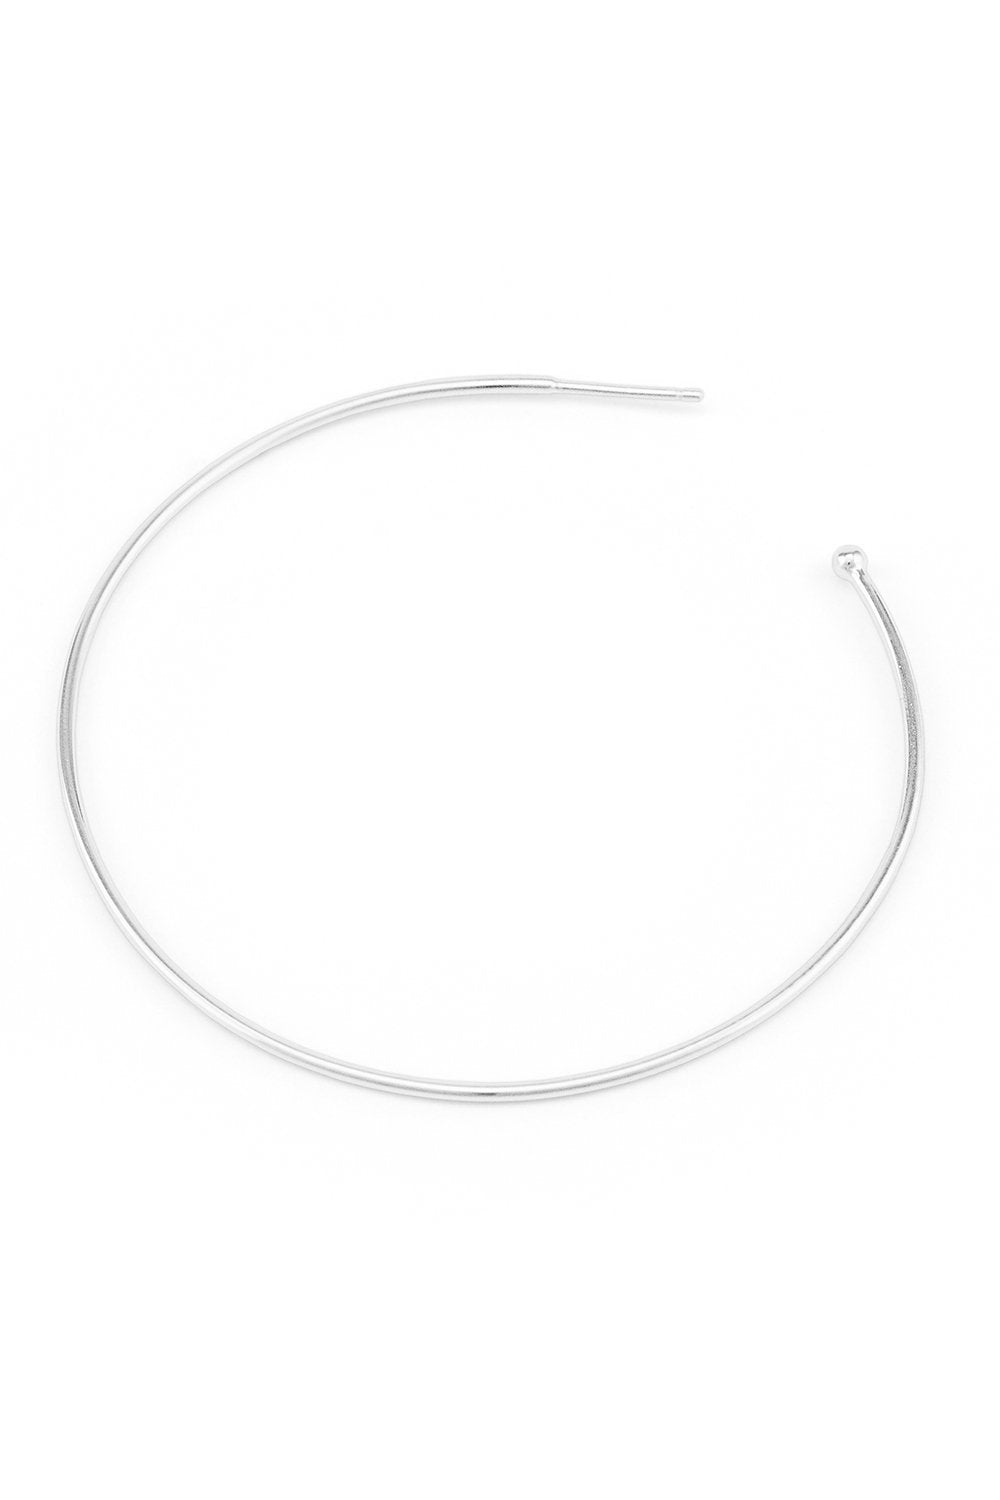 BY CHARLOTTE HOOP EARINGS SILVER PLATED